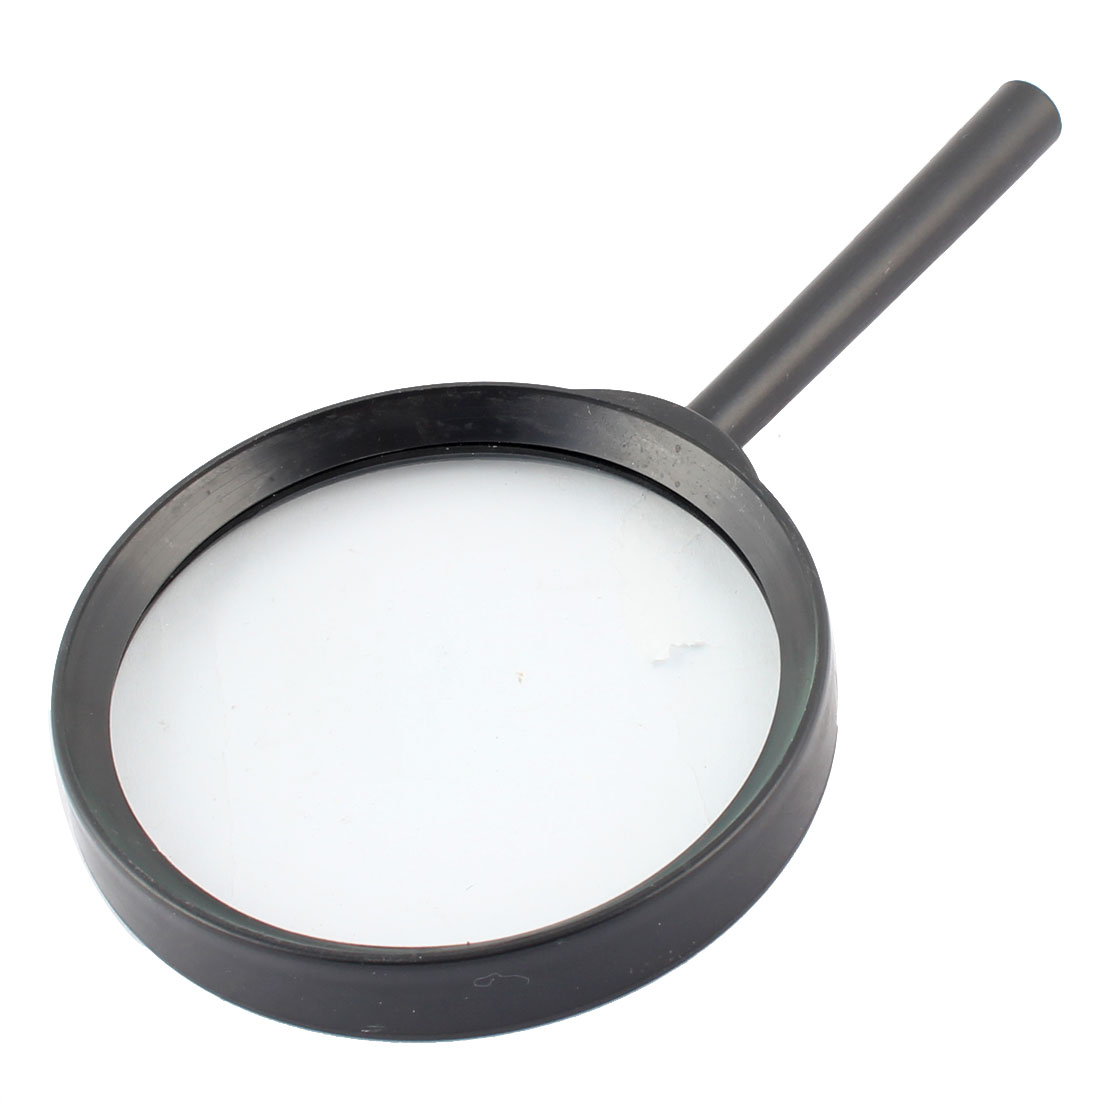 Plastic Frame Handheld Magnifier Reading Magnifying Glass Jewelry Loupe 90mm Diameter